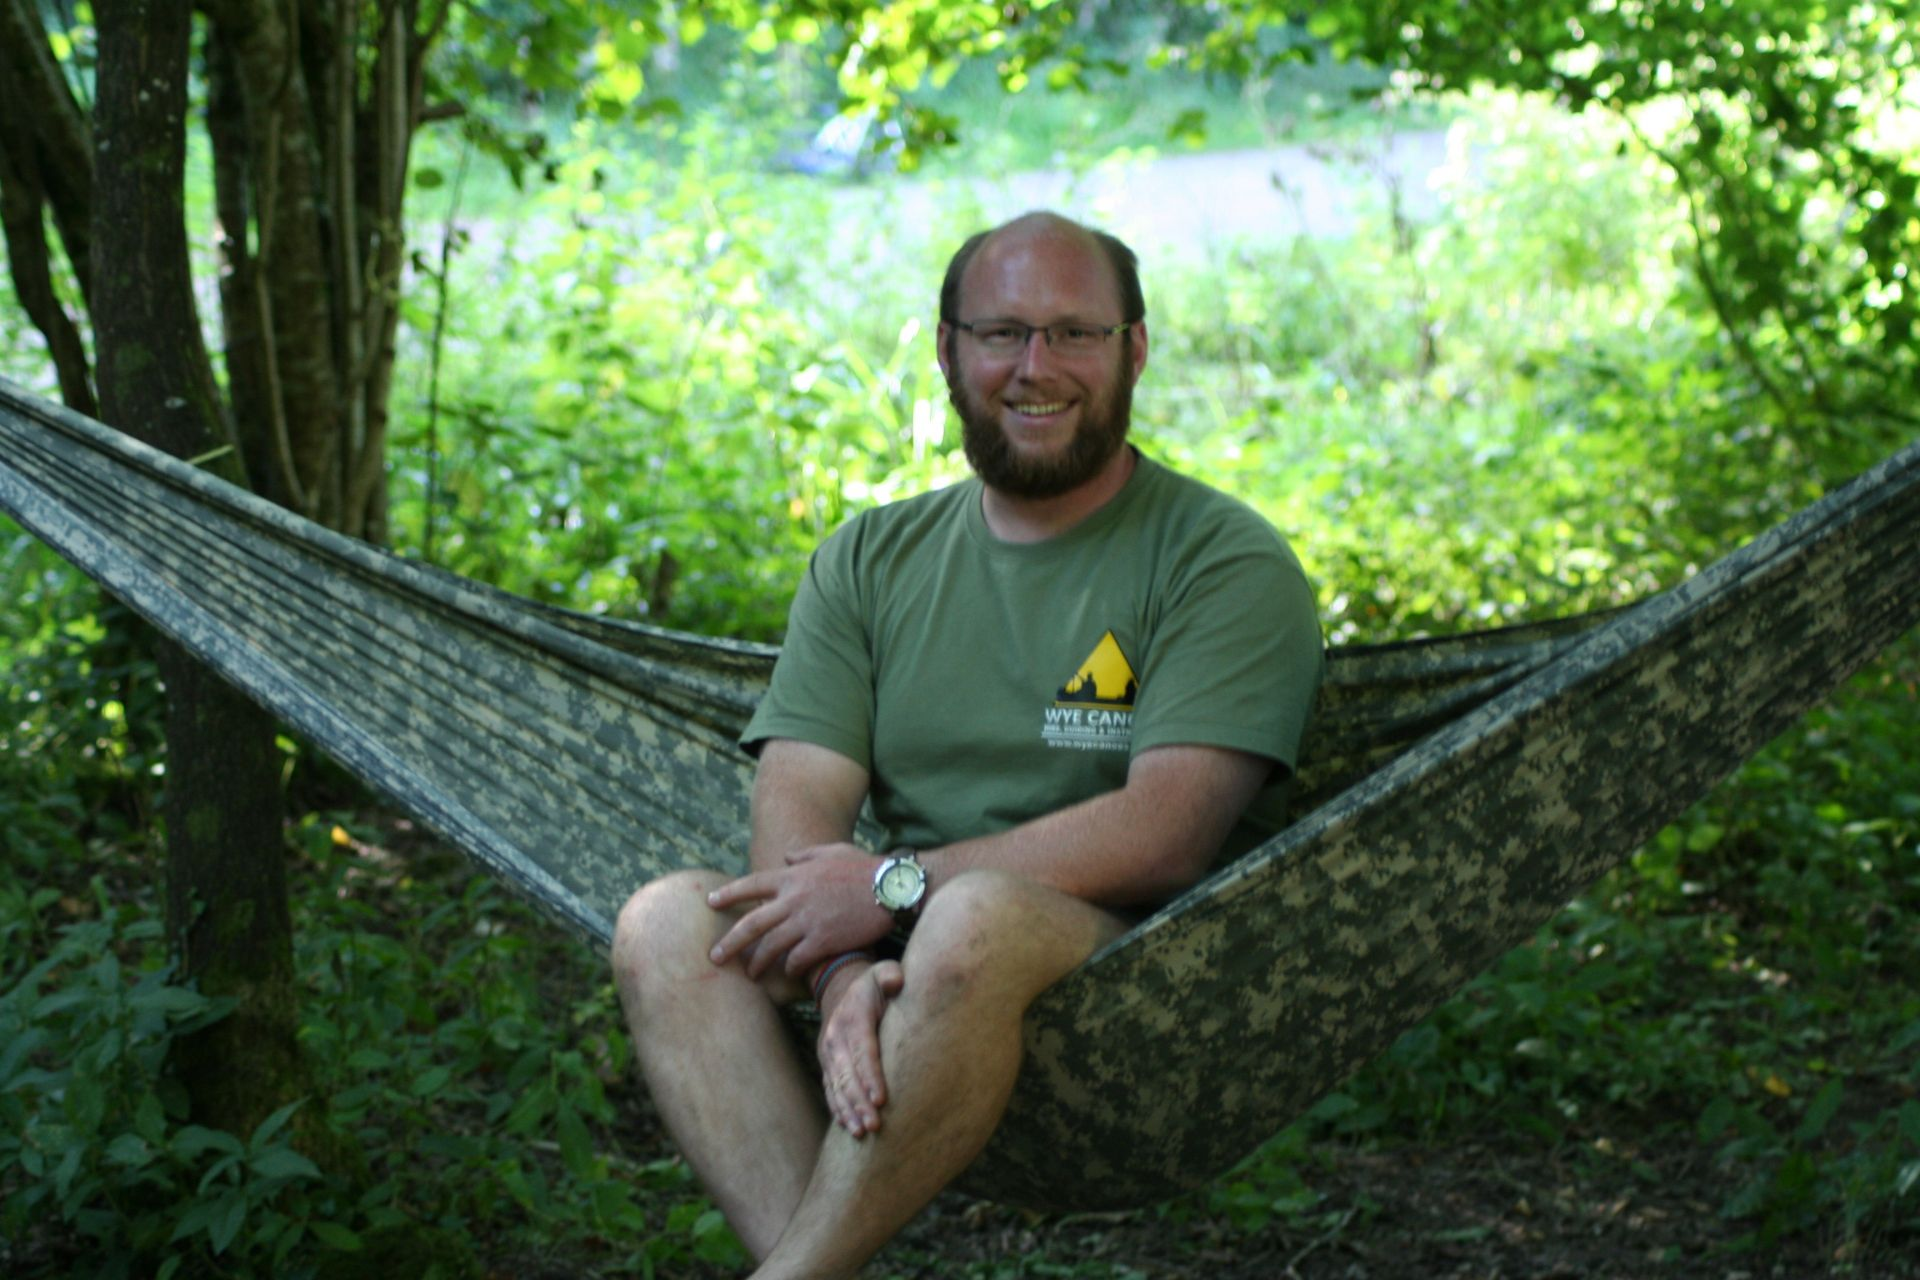 Wye Canoes activity instructor